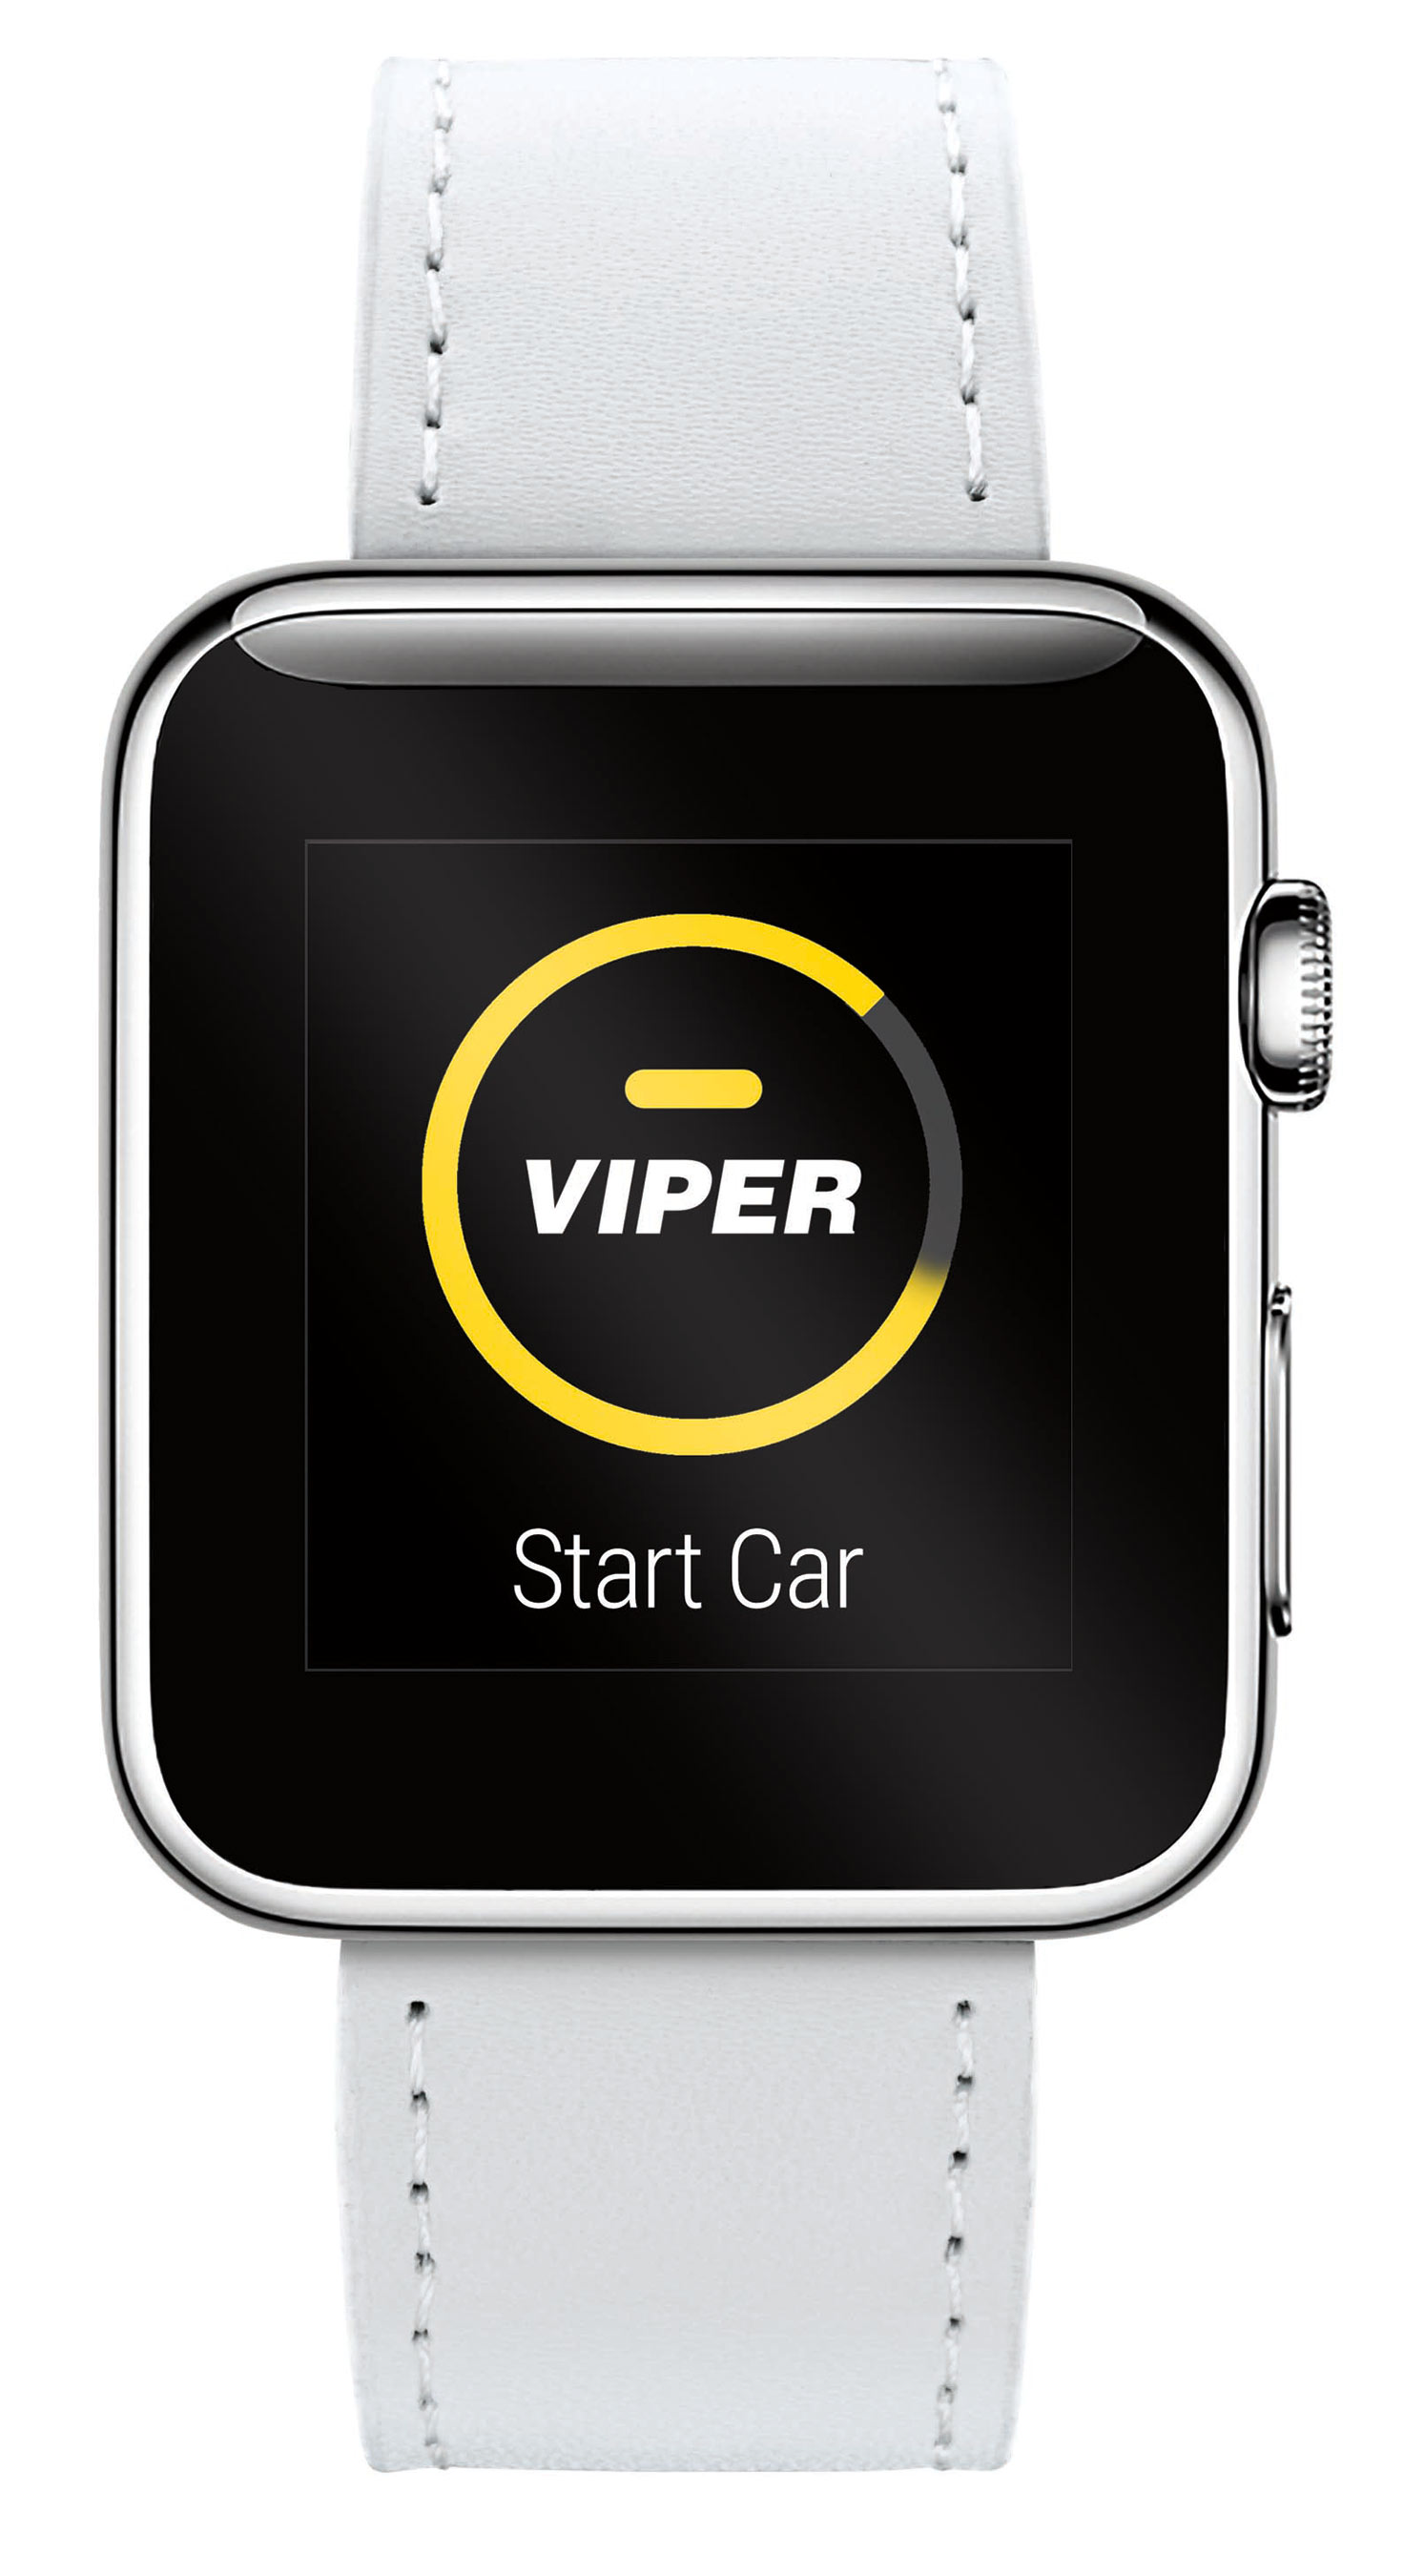 viper app will remotely start lock and unlock car. Black Bedroom Furniture Sets. Home Design Ideas